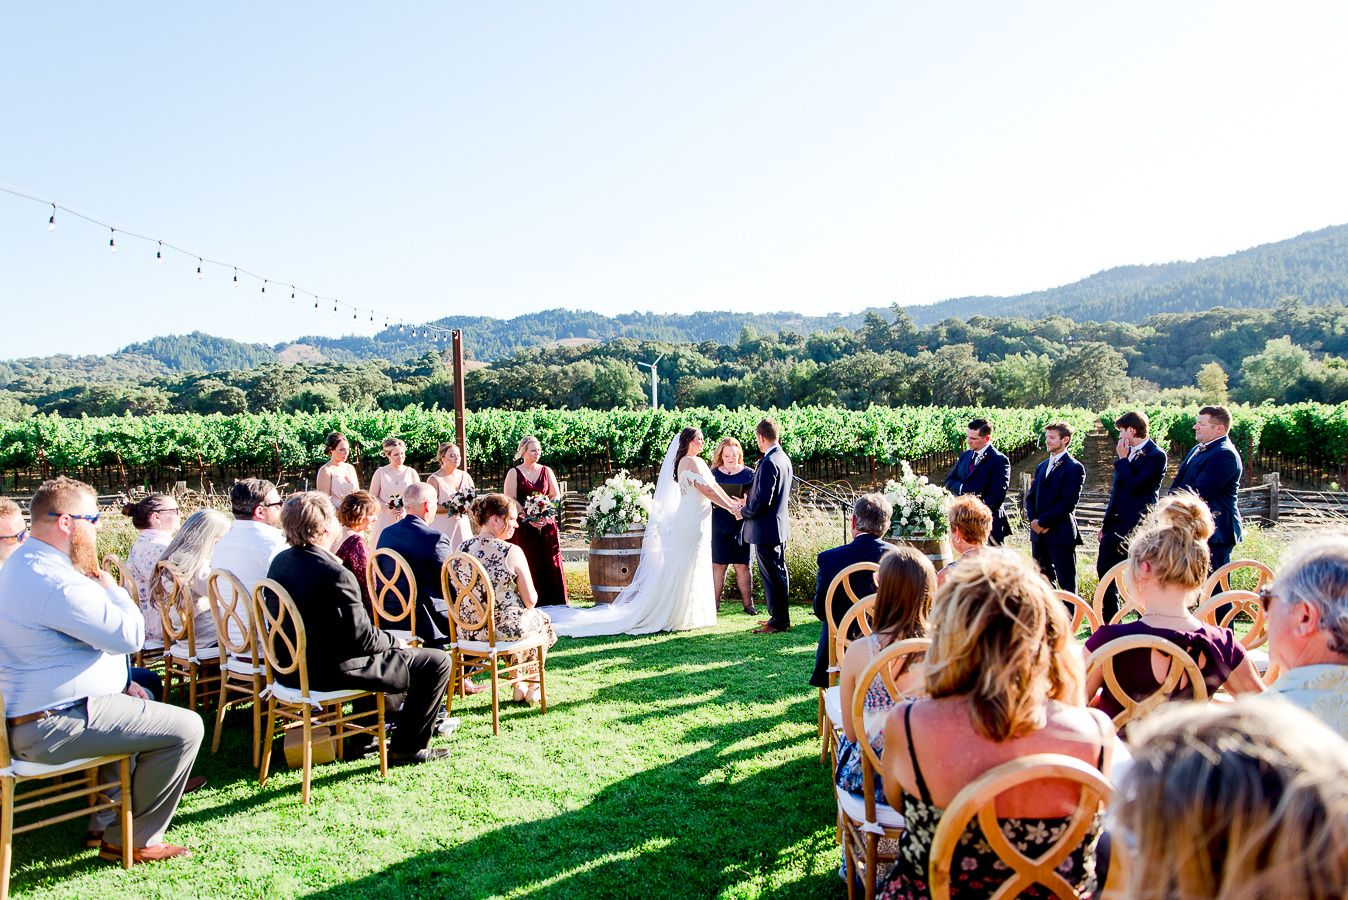 bride and groom hold hands in front of guests for outdoor wedding at Pennyroyal Farm in NorCal